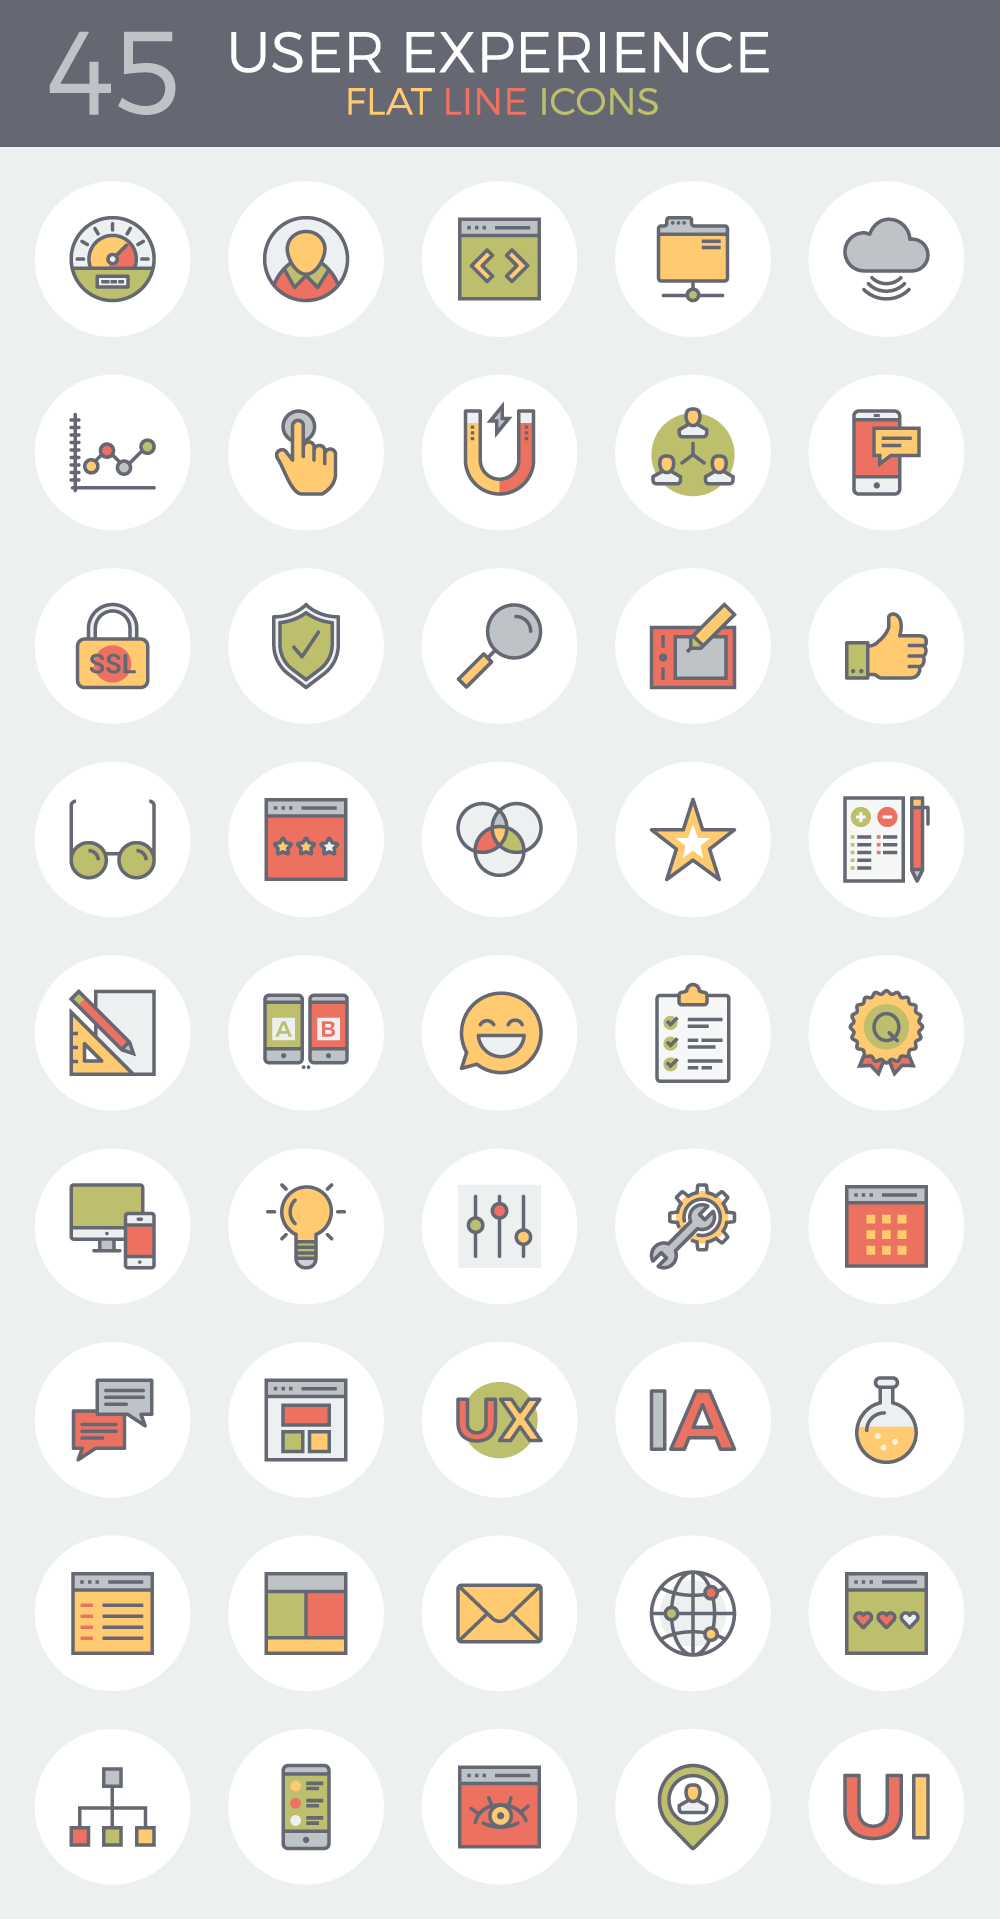 flat-line-user-experience-icon-set-45-icons